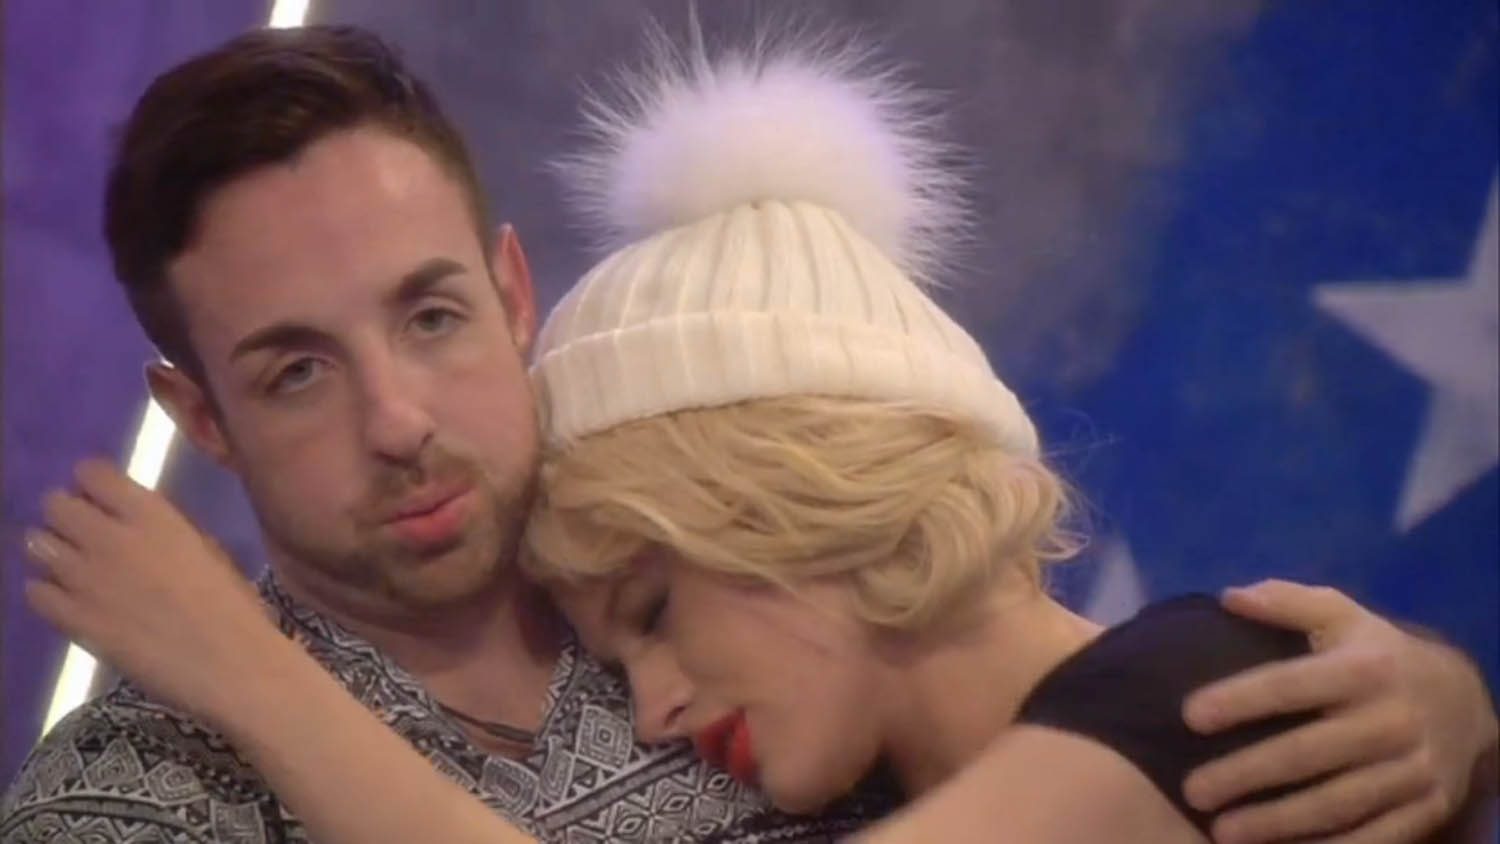 Chloe Jasmine tells Celeb Big Brother housemates she would love Stevi Ritchie 'even if he was in a wheelchair'